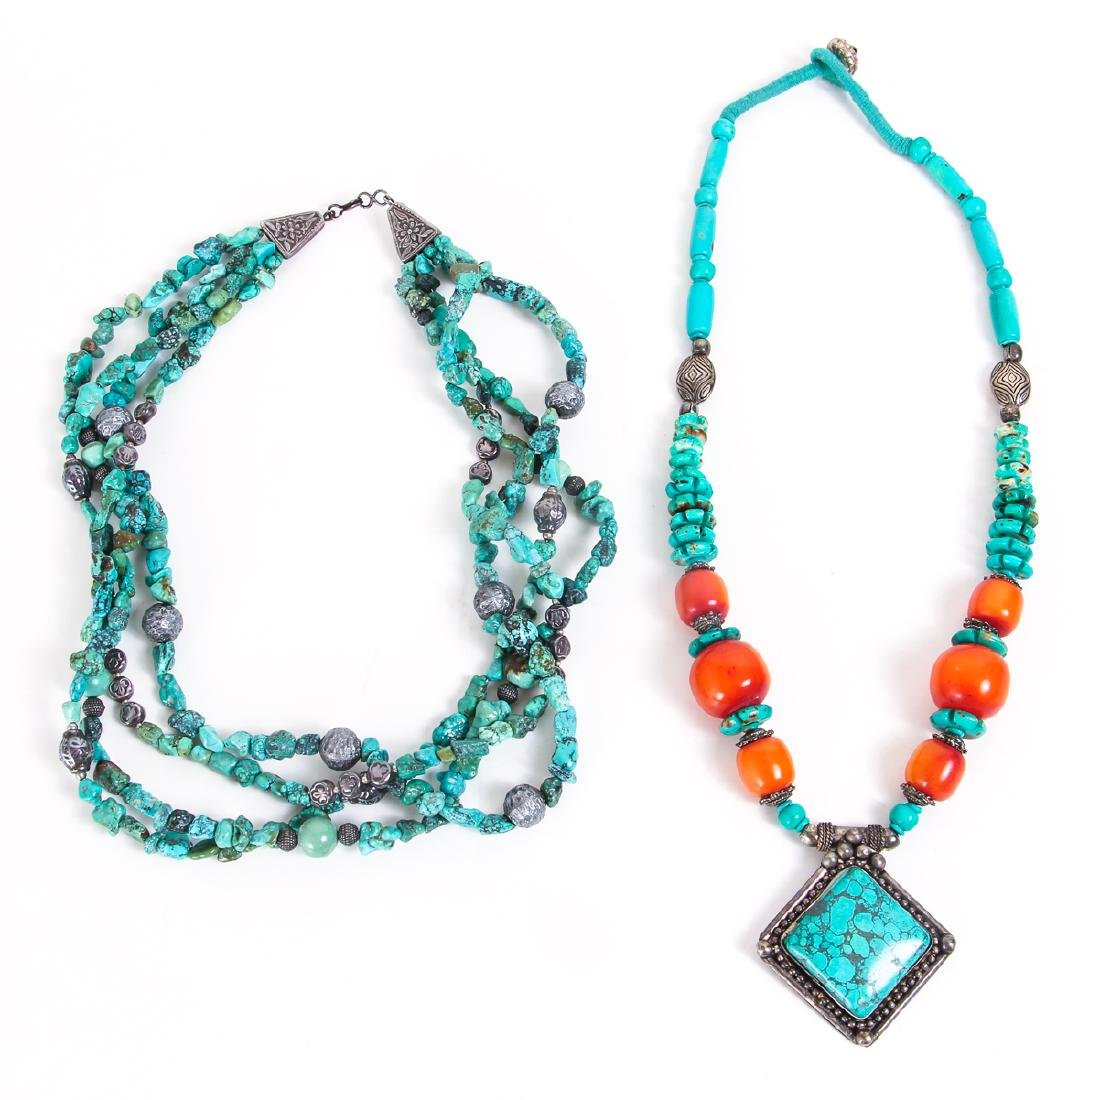 Two Chinese Turquoise and Silver Necklaces